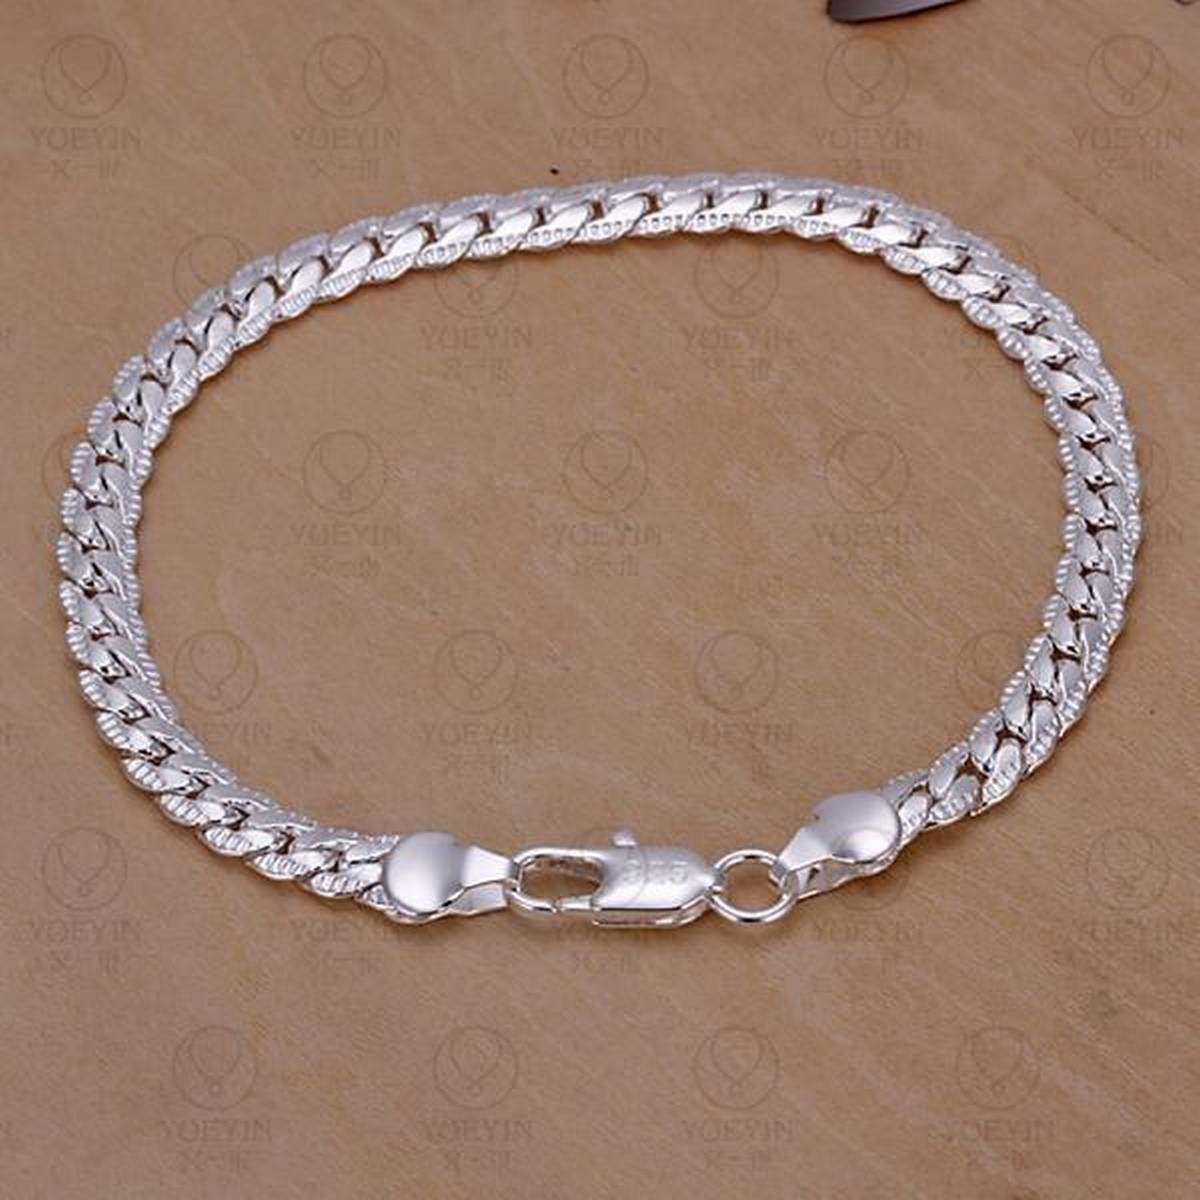 Charm Bracelets Chain silver plated bracelet for women men unisex jewelry hand chain for Gift